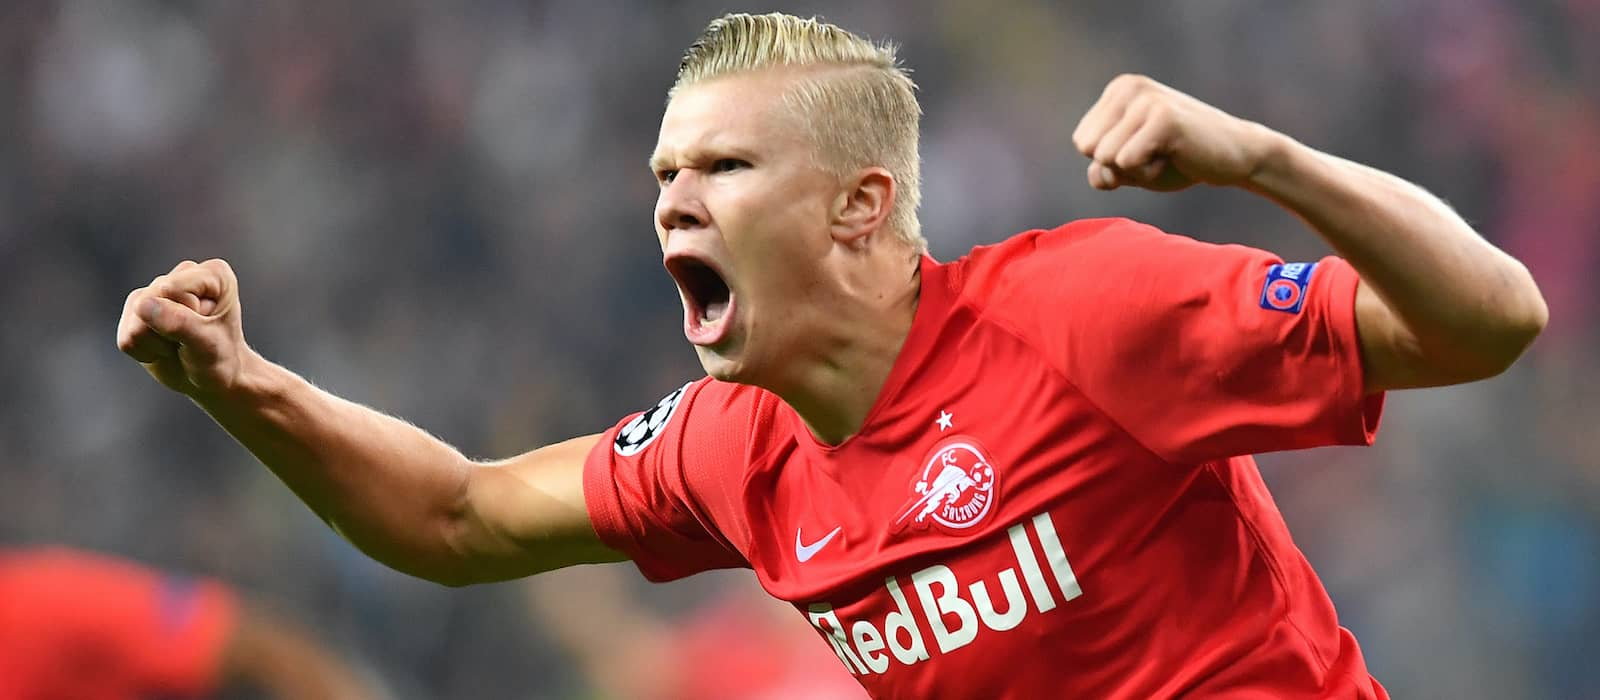 Why Erling Haaland's move to Manchester United will be complicated